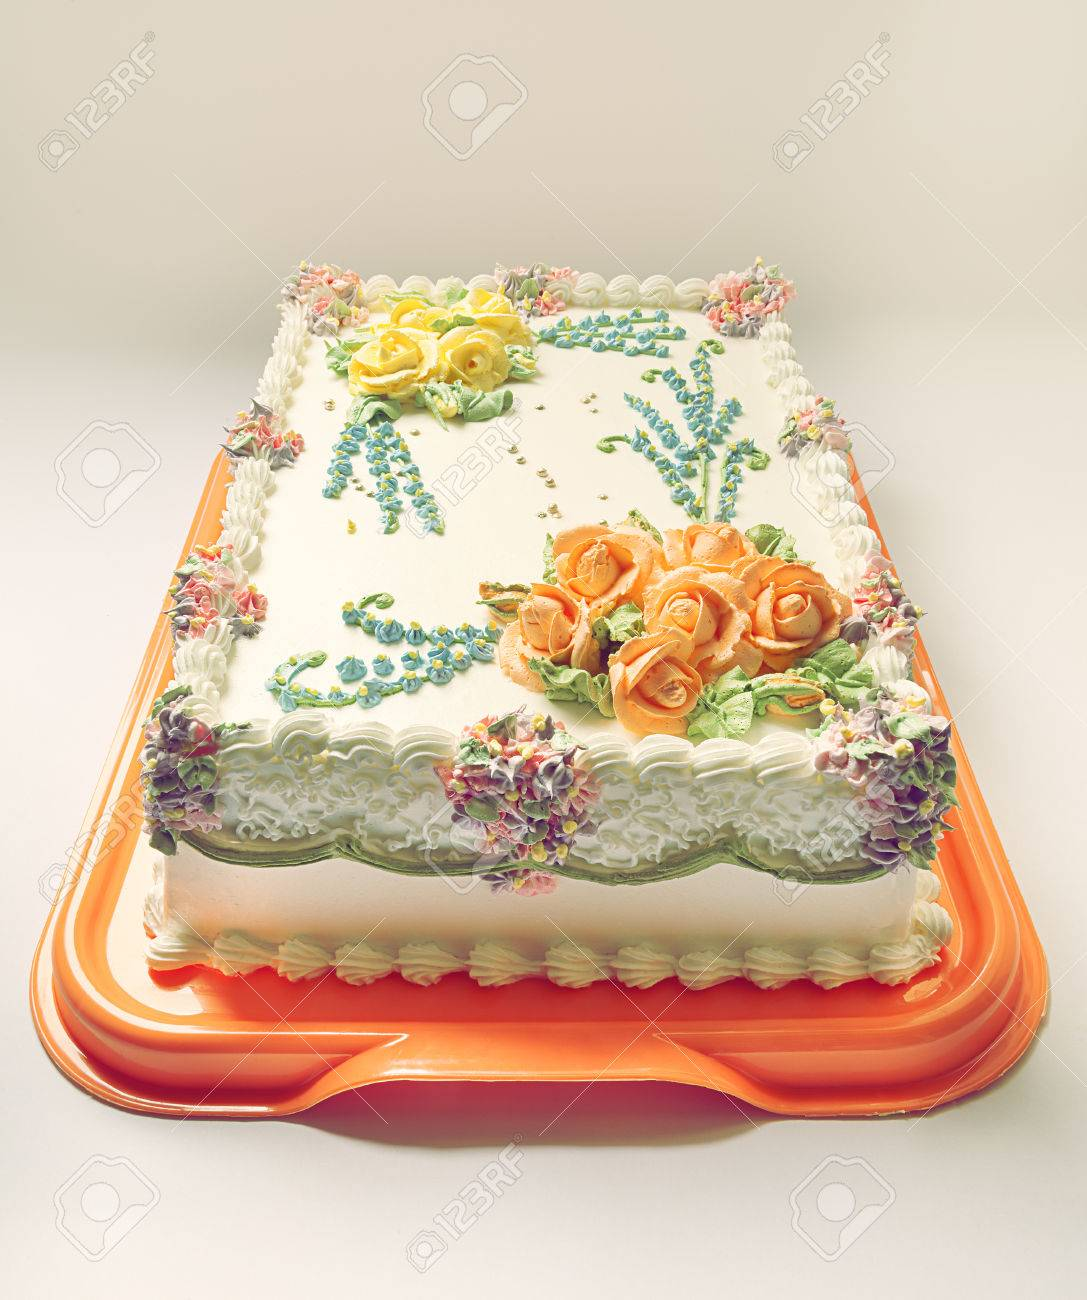 Classical Birthday Cake Design With A Lot Of Flowers Of Cream Stock